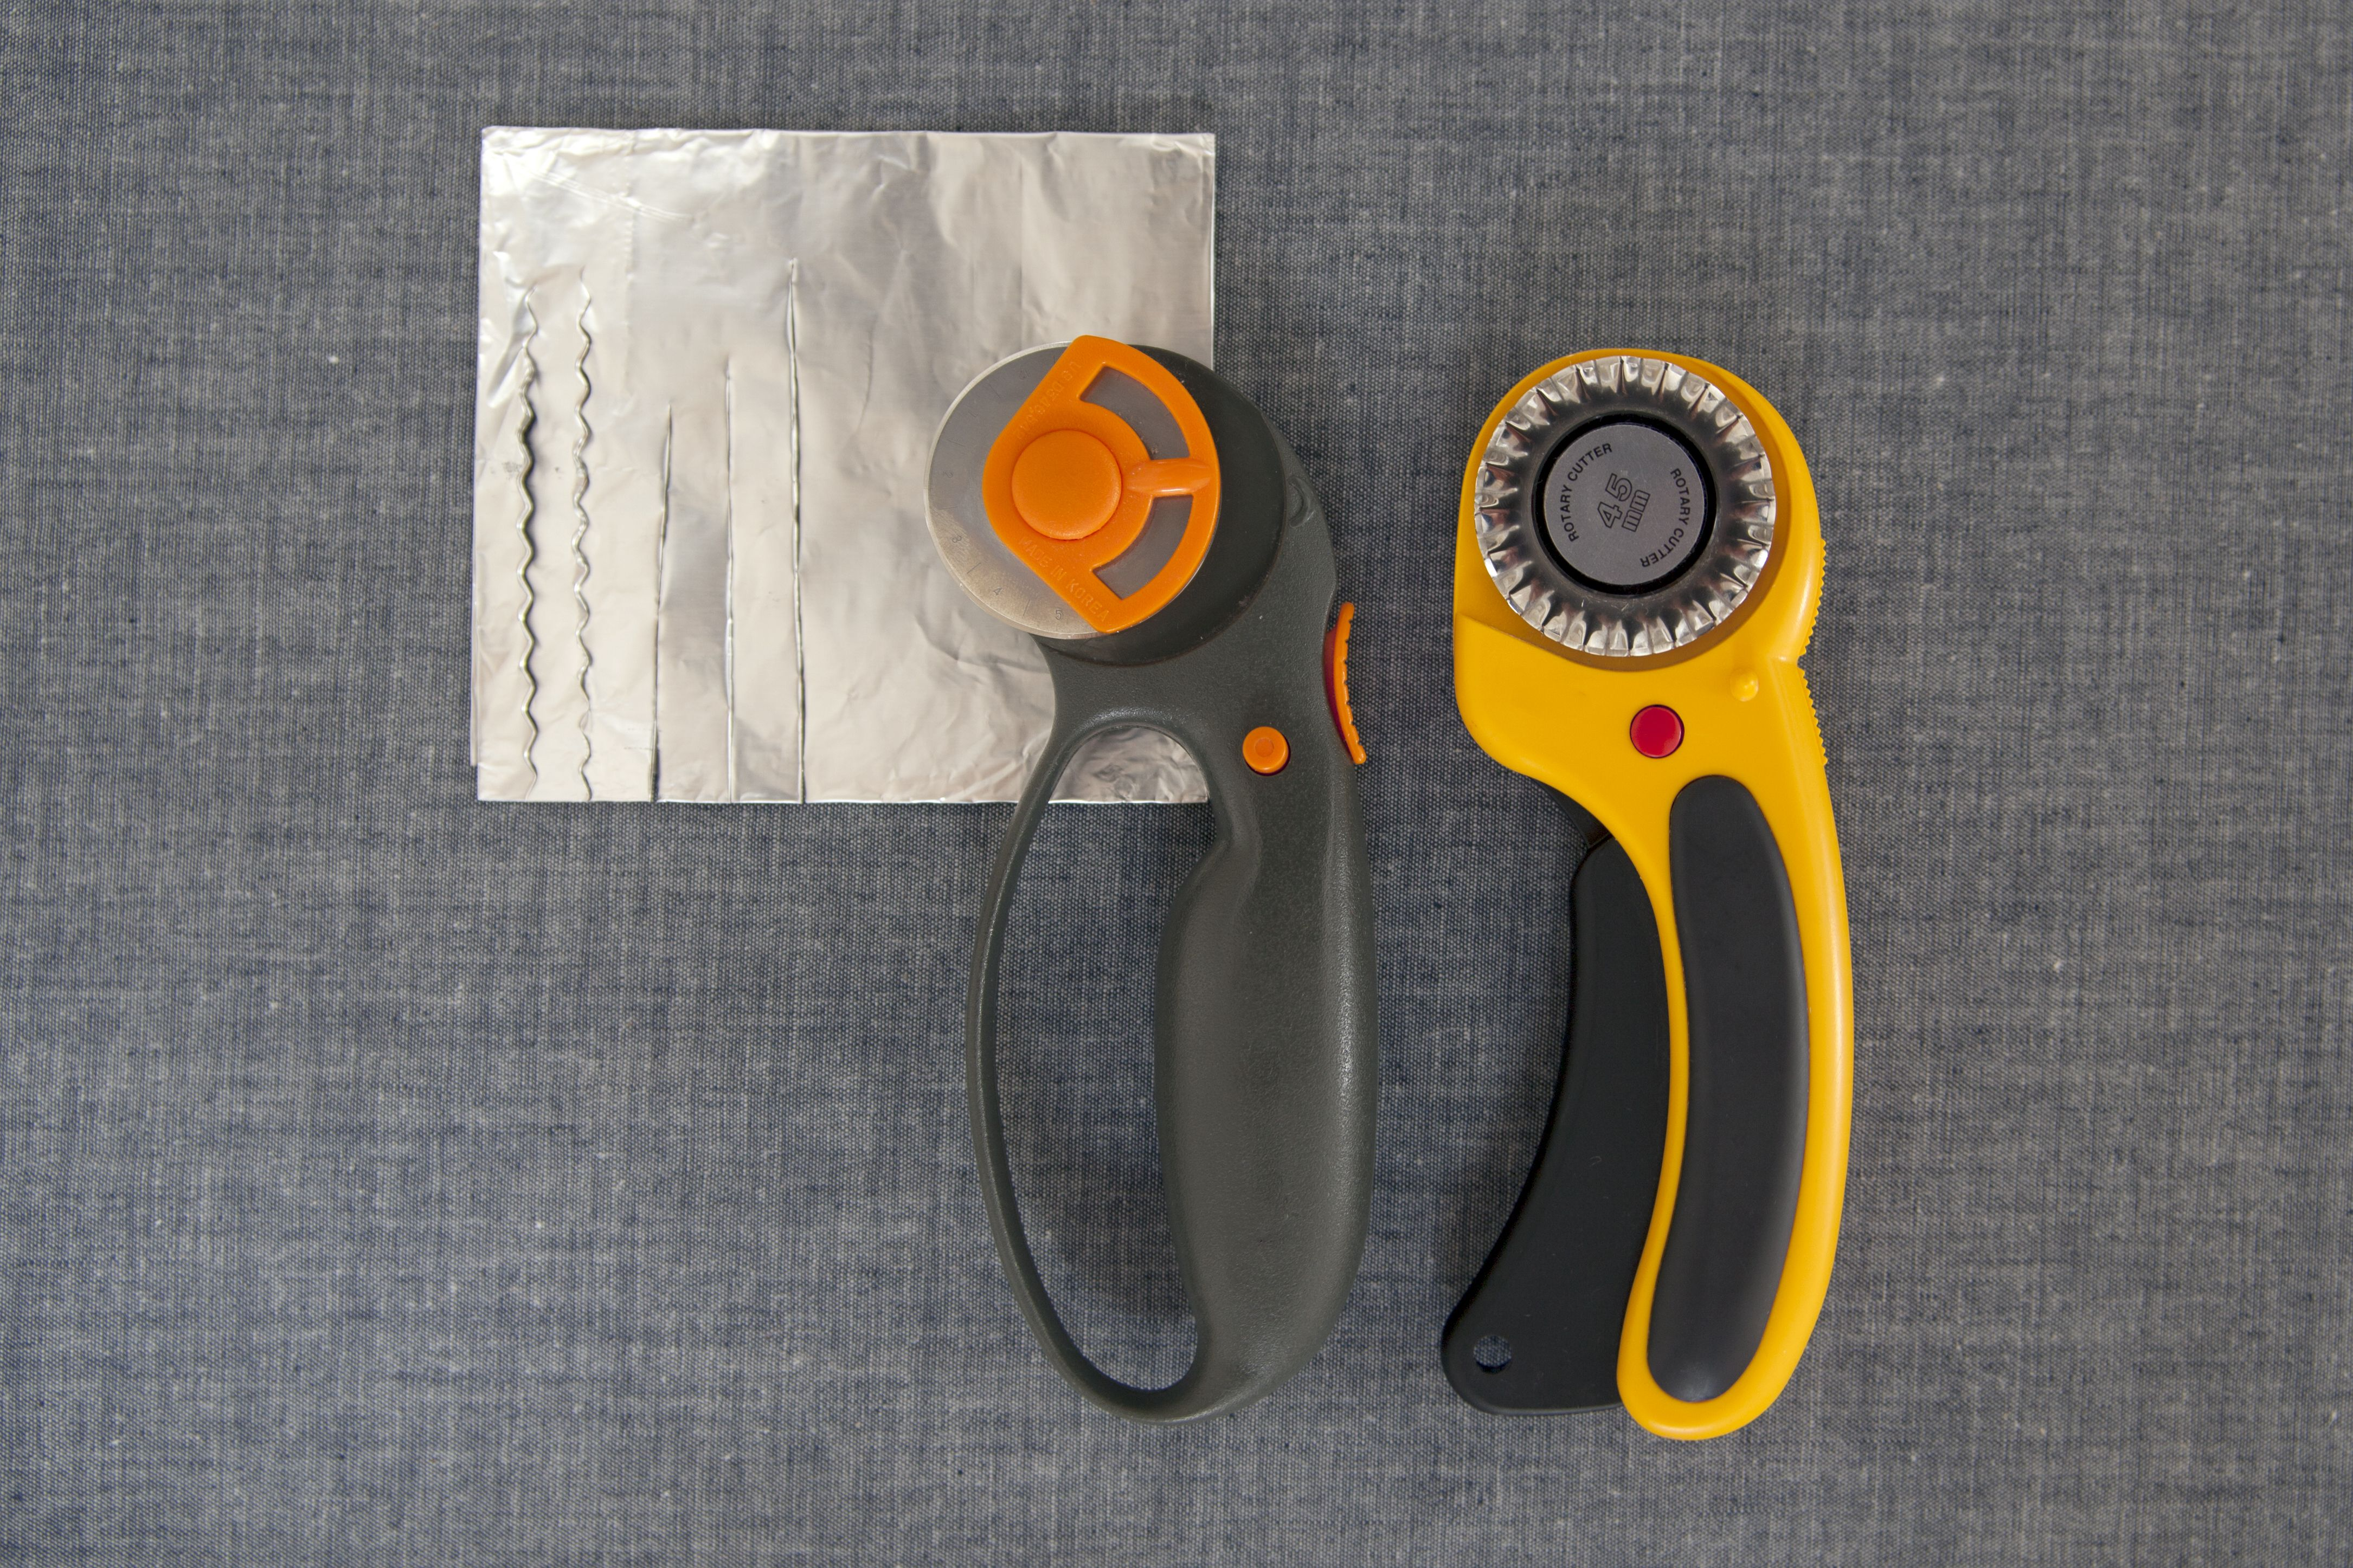 Sharpen Rotary Blades with Aluminum Foil Rotary blades